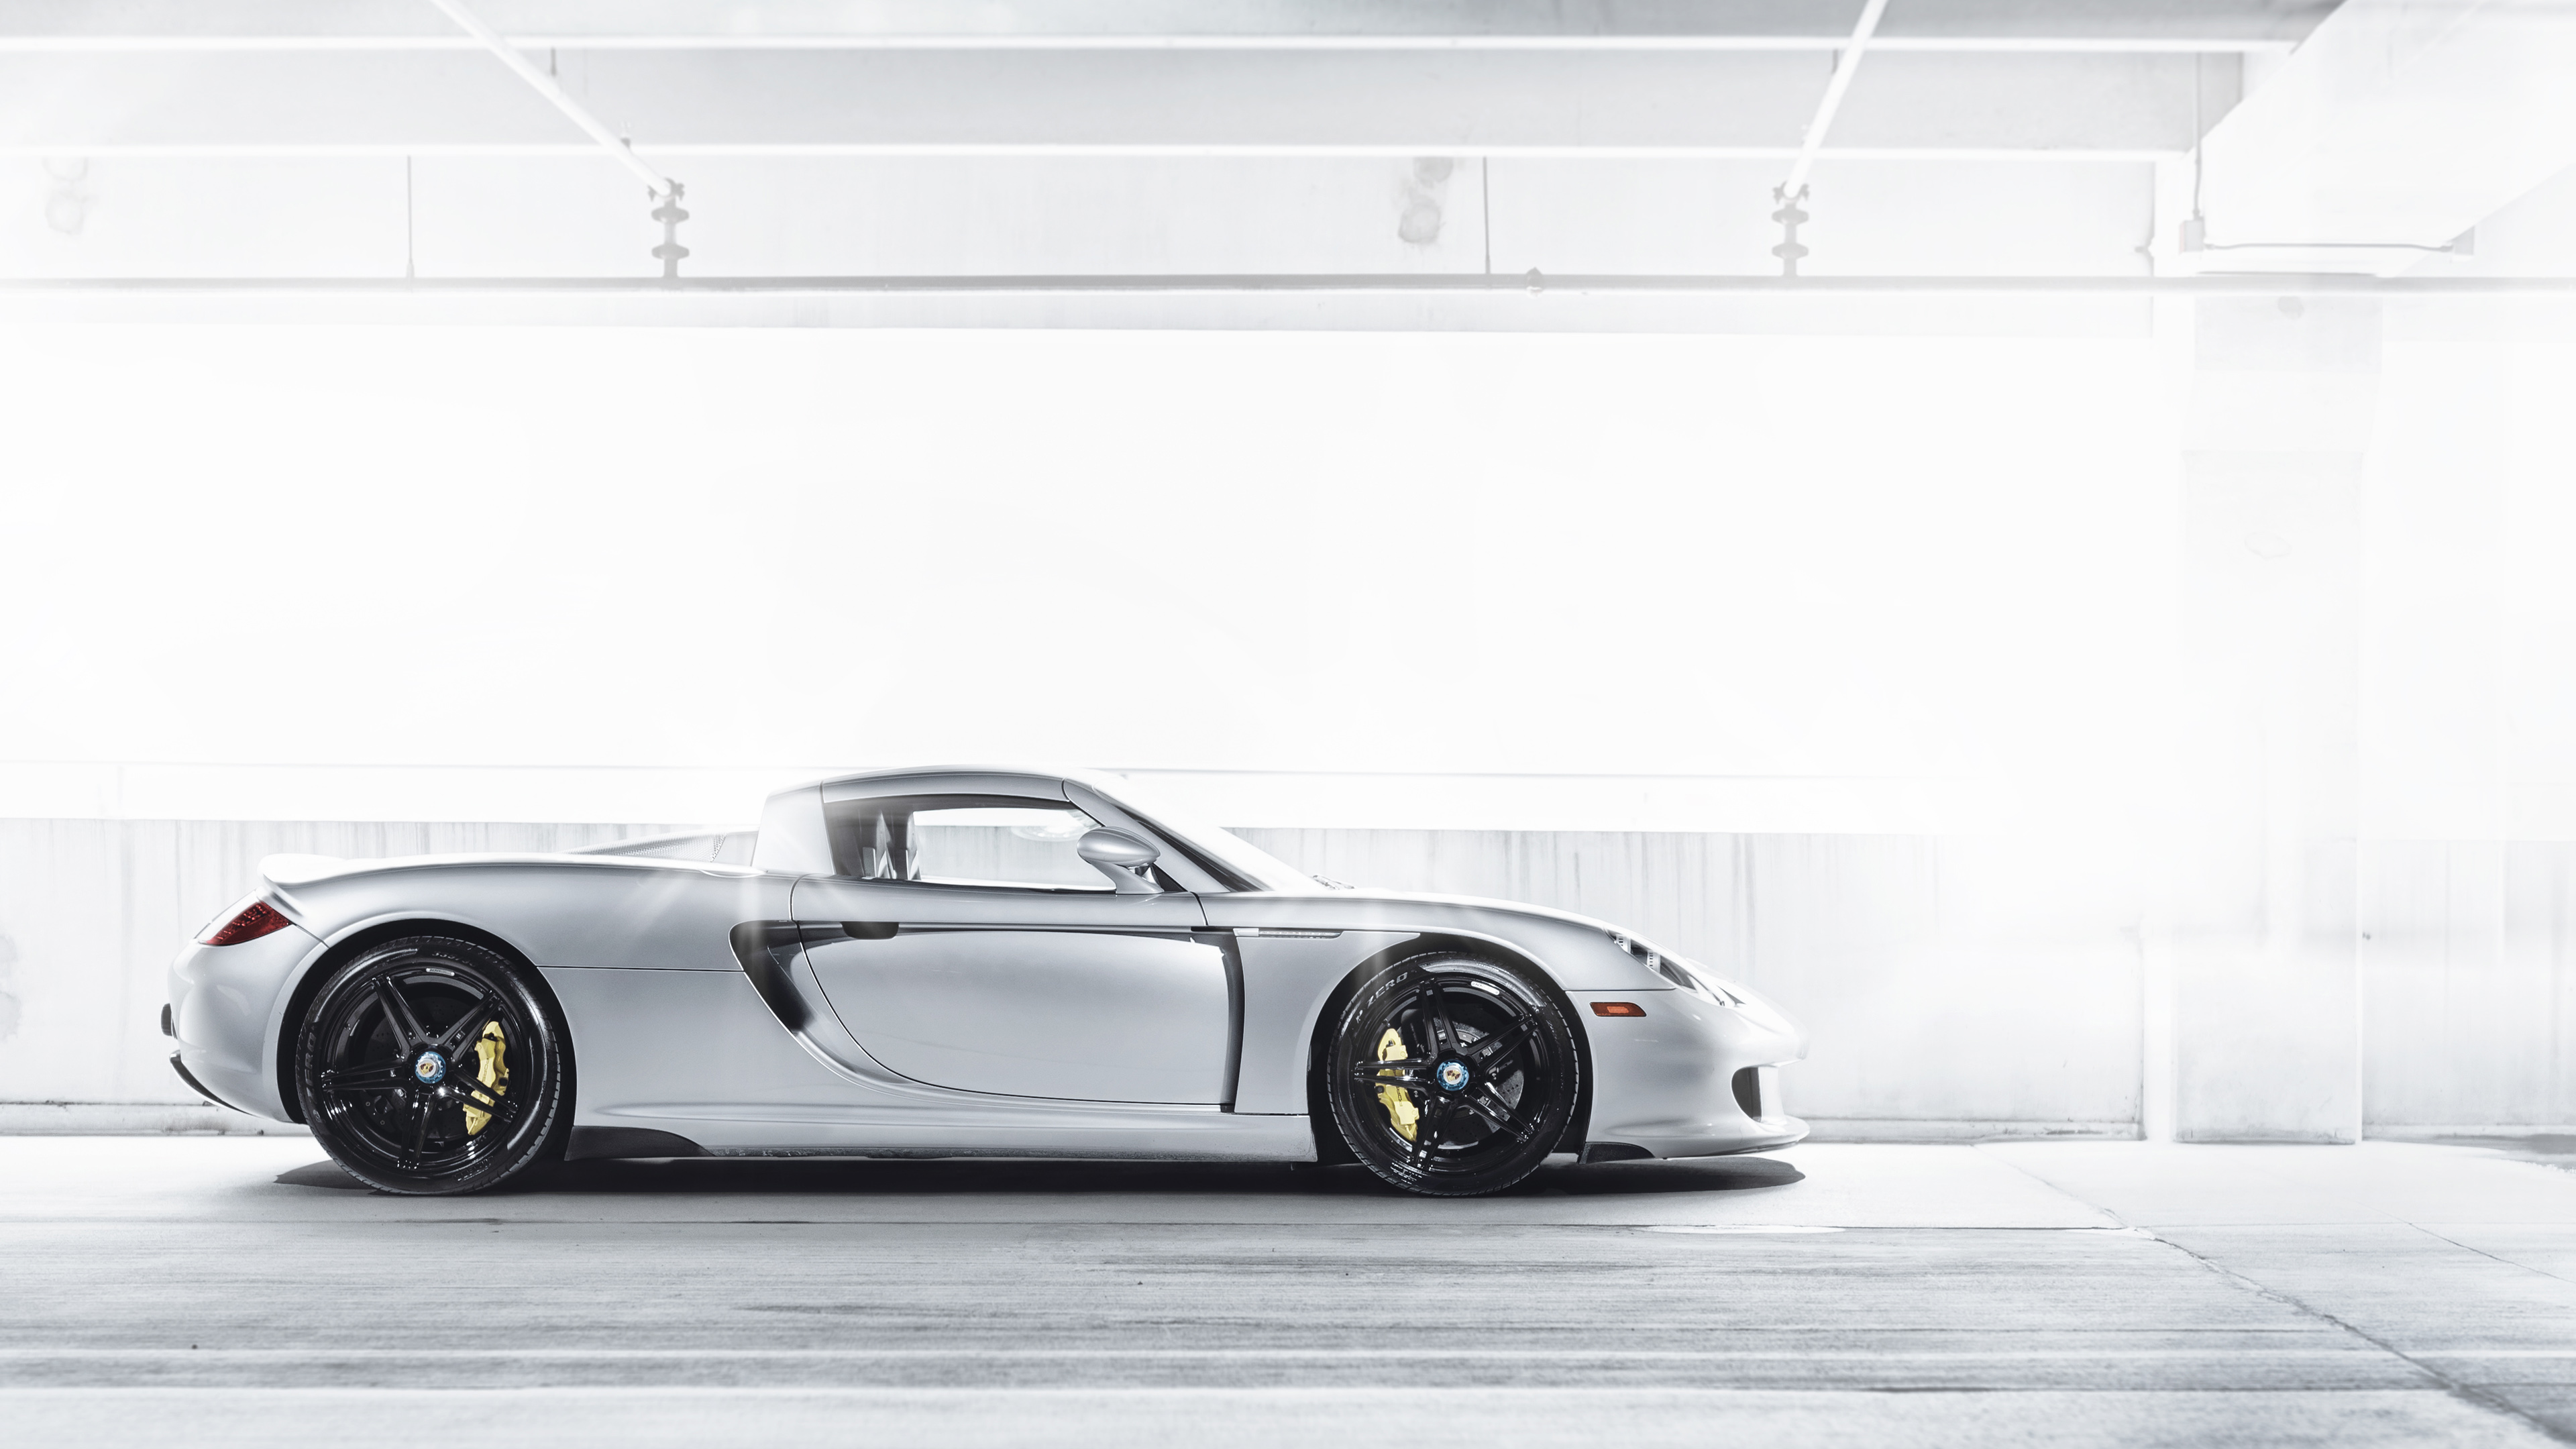 Adv1 Porsche Carrera Gt Wallpaper Hd Car Wallpapers